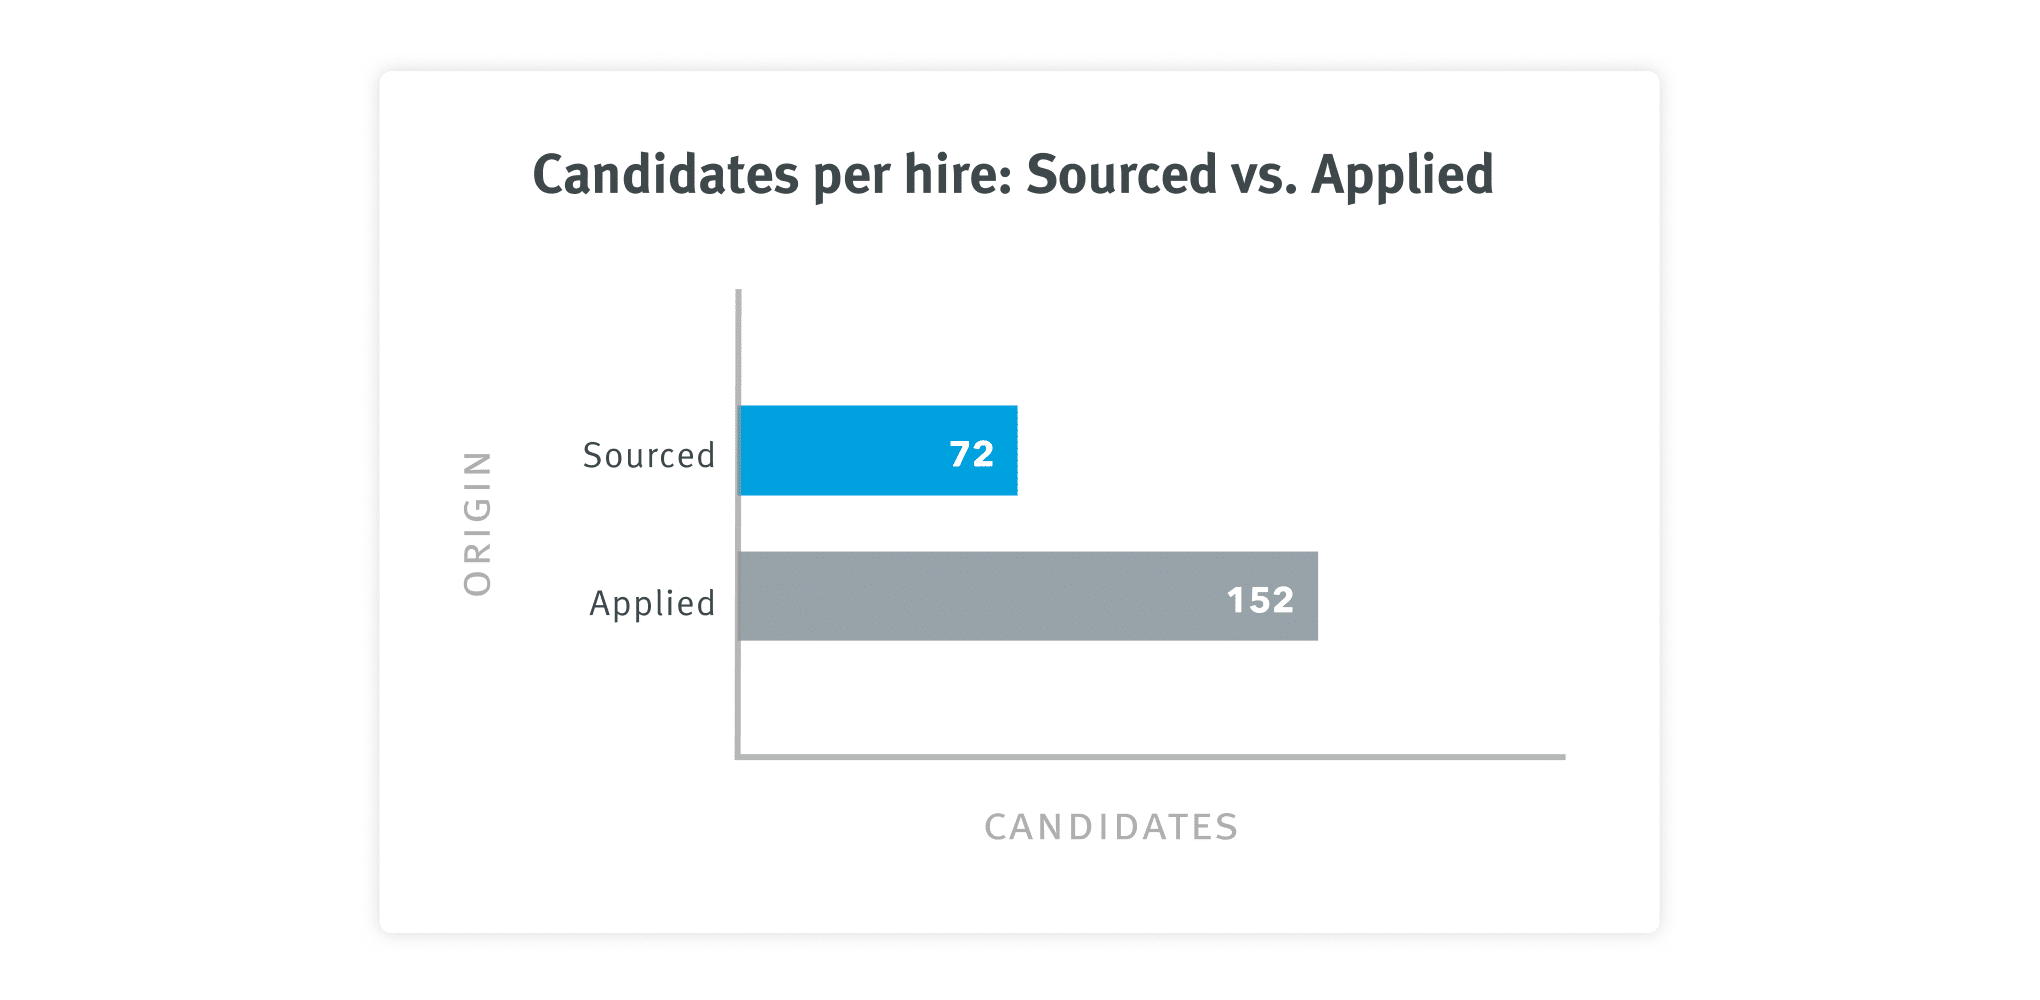 Candidates per hire - sourced vs applied